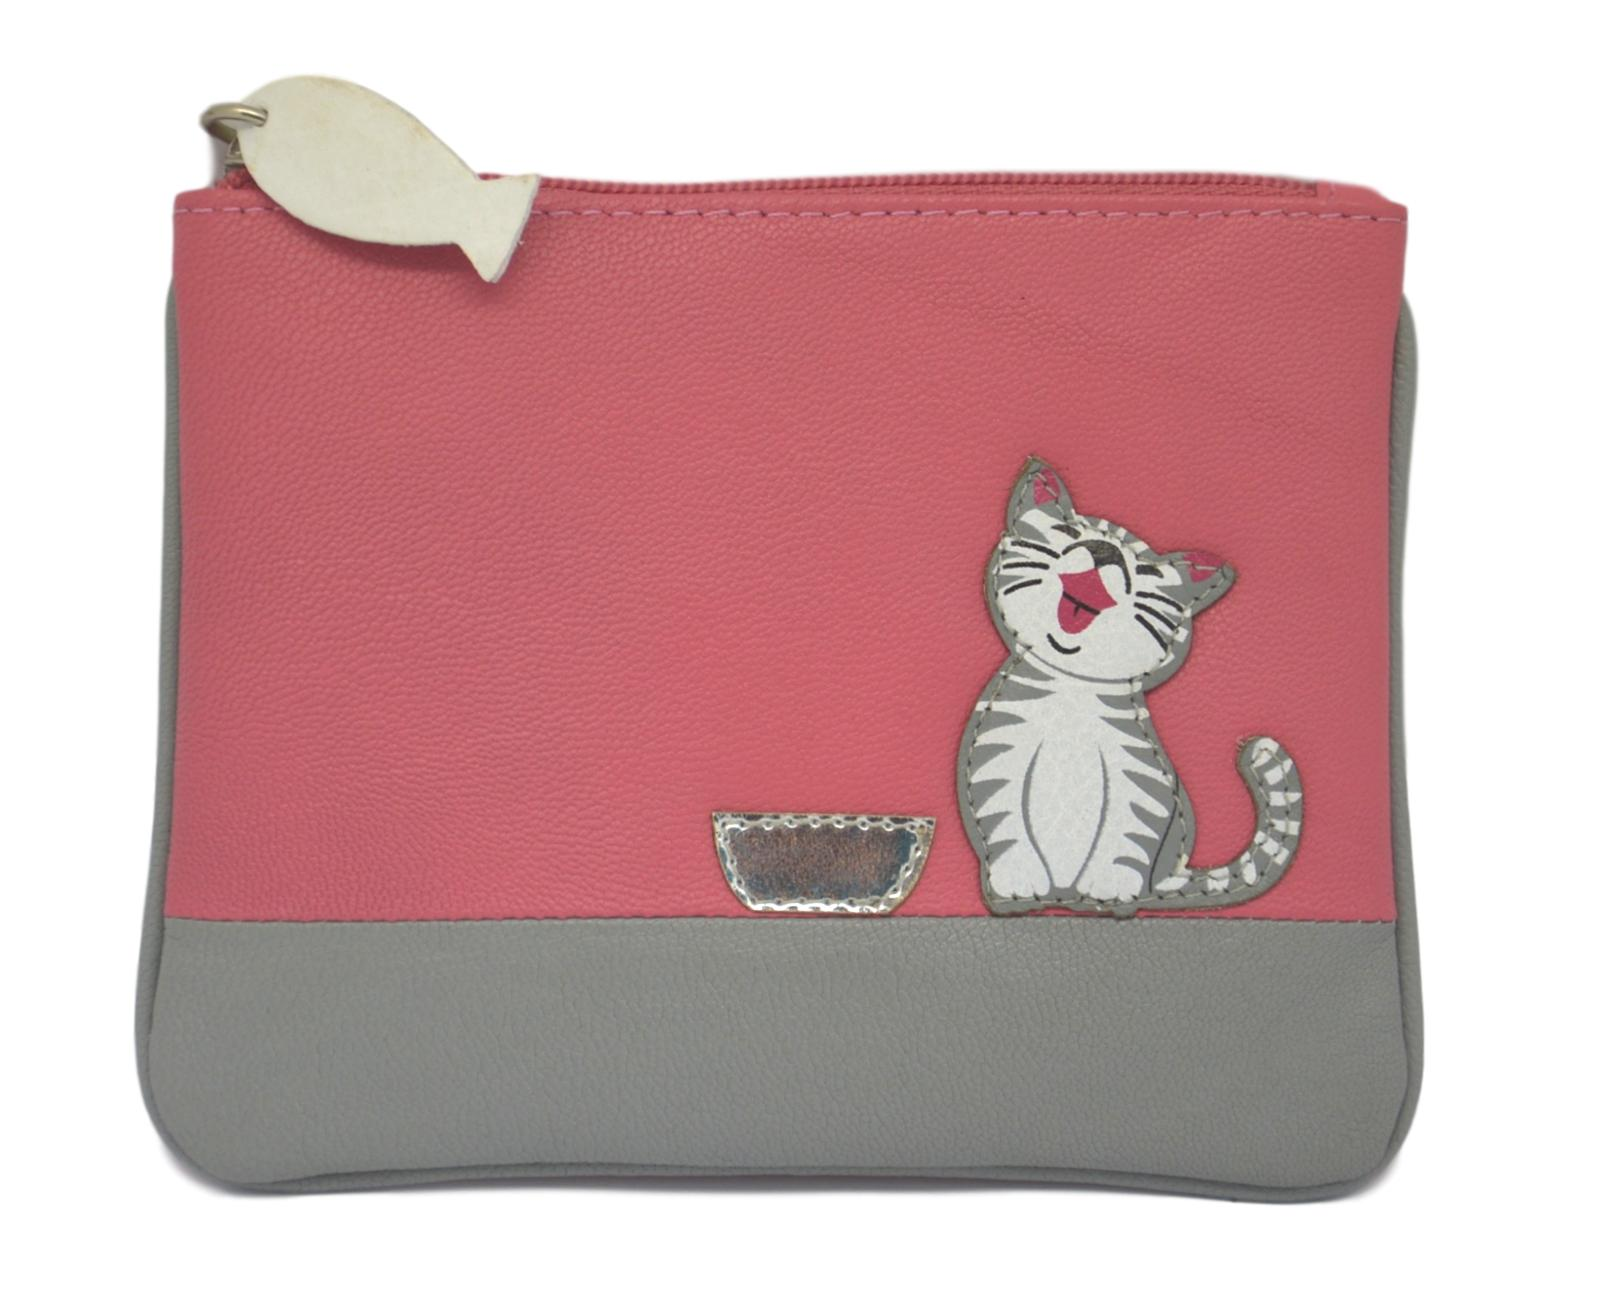 Mala Leather Small Pink Ziggy Cat Coin Purse